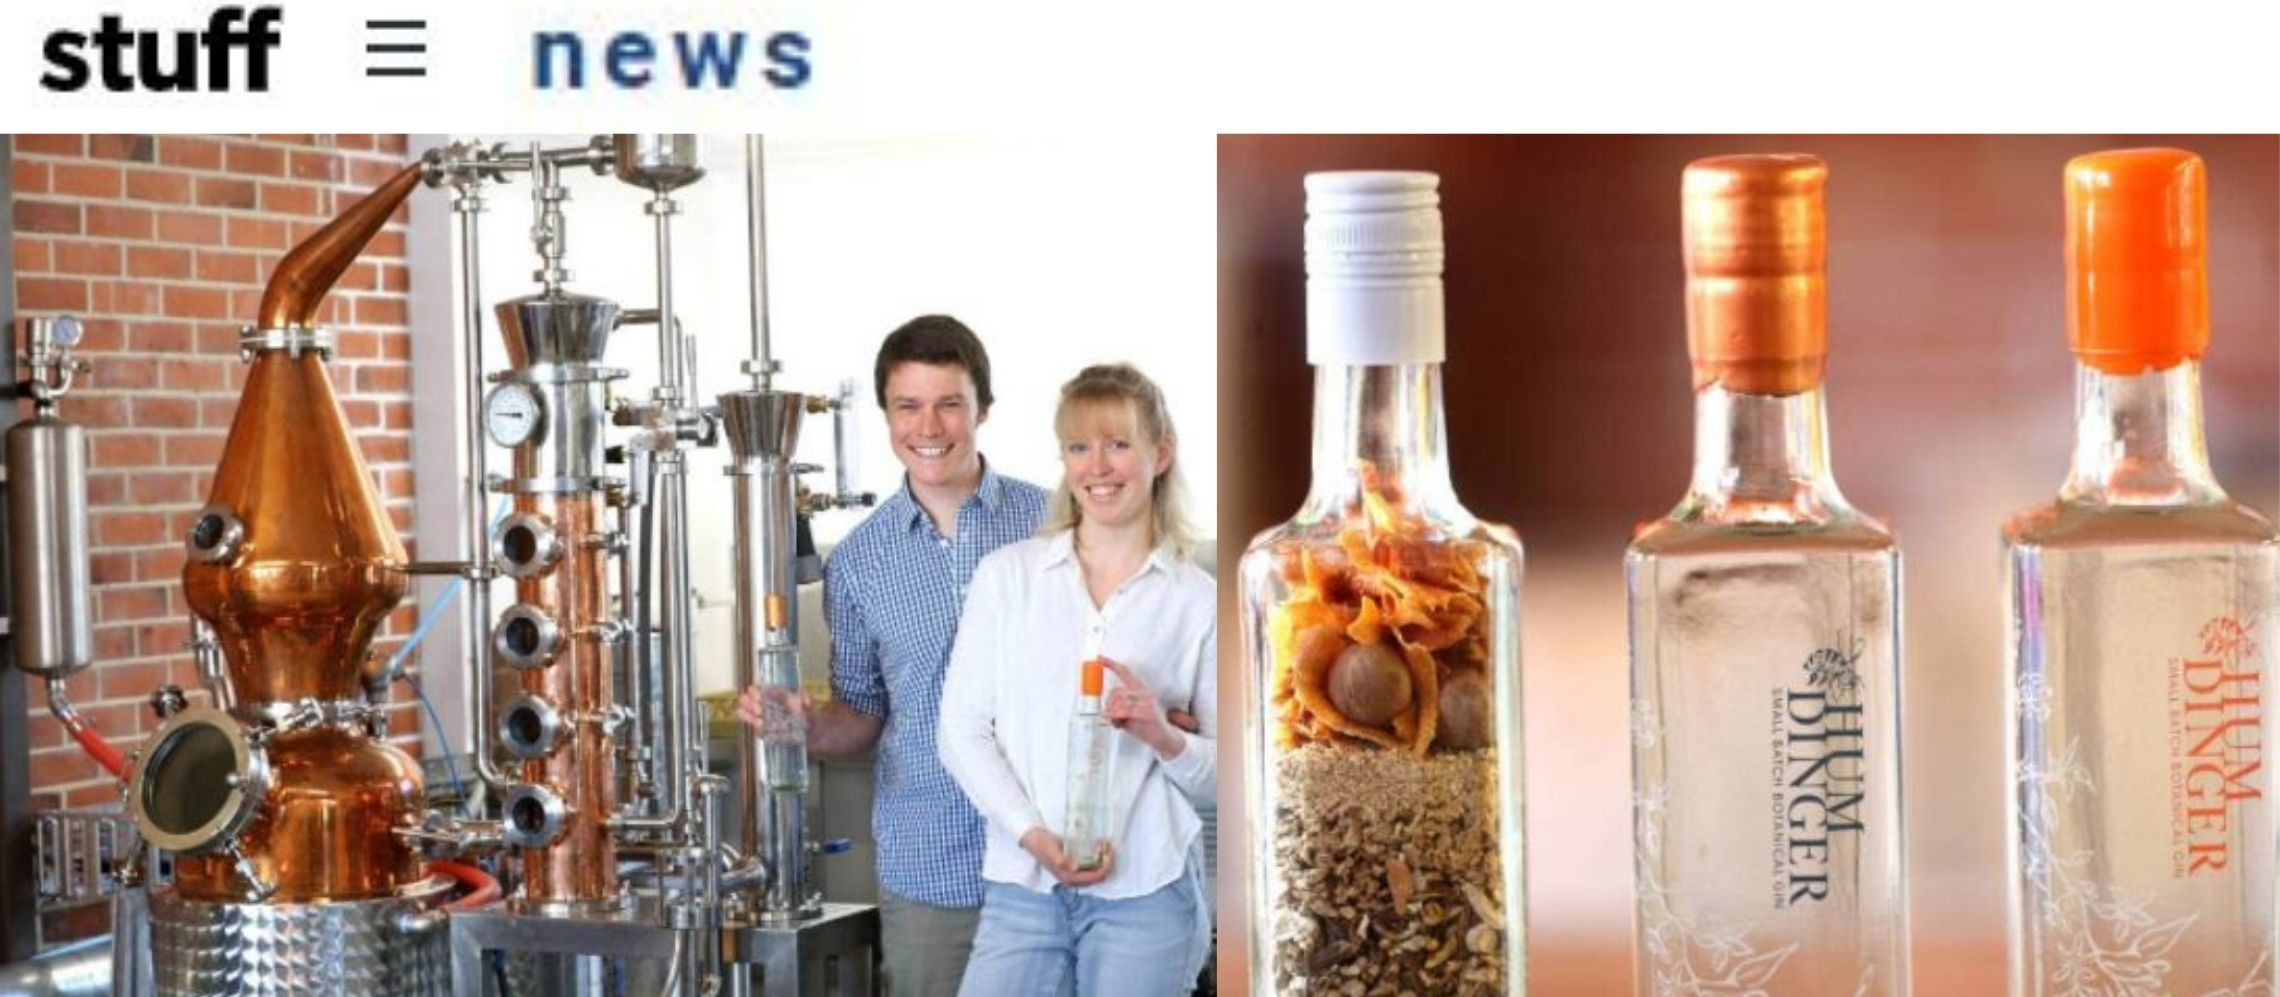 Photo for: Geraldine gin distillery awarded silver medals in international competition via Stuff PR